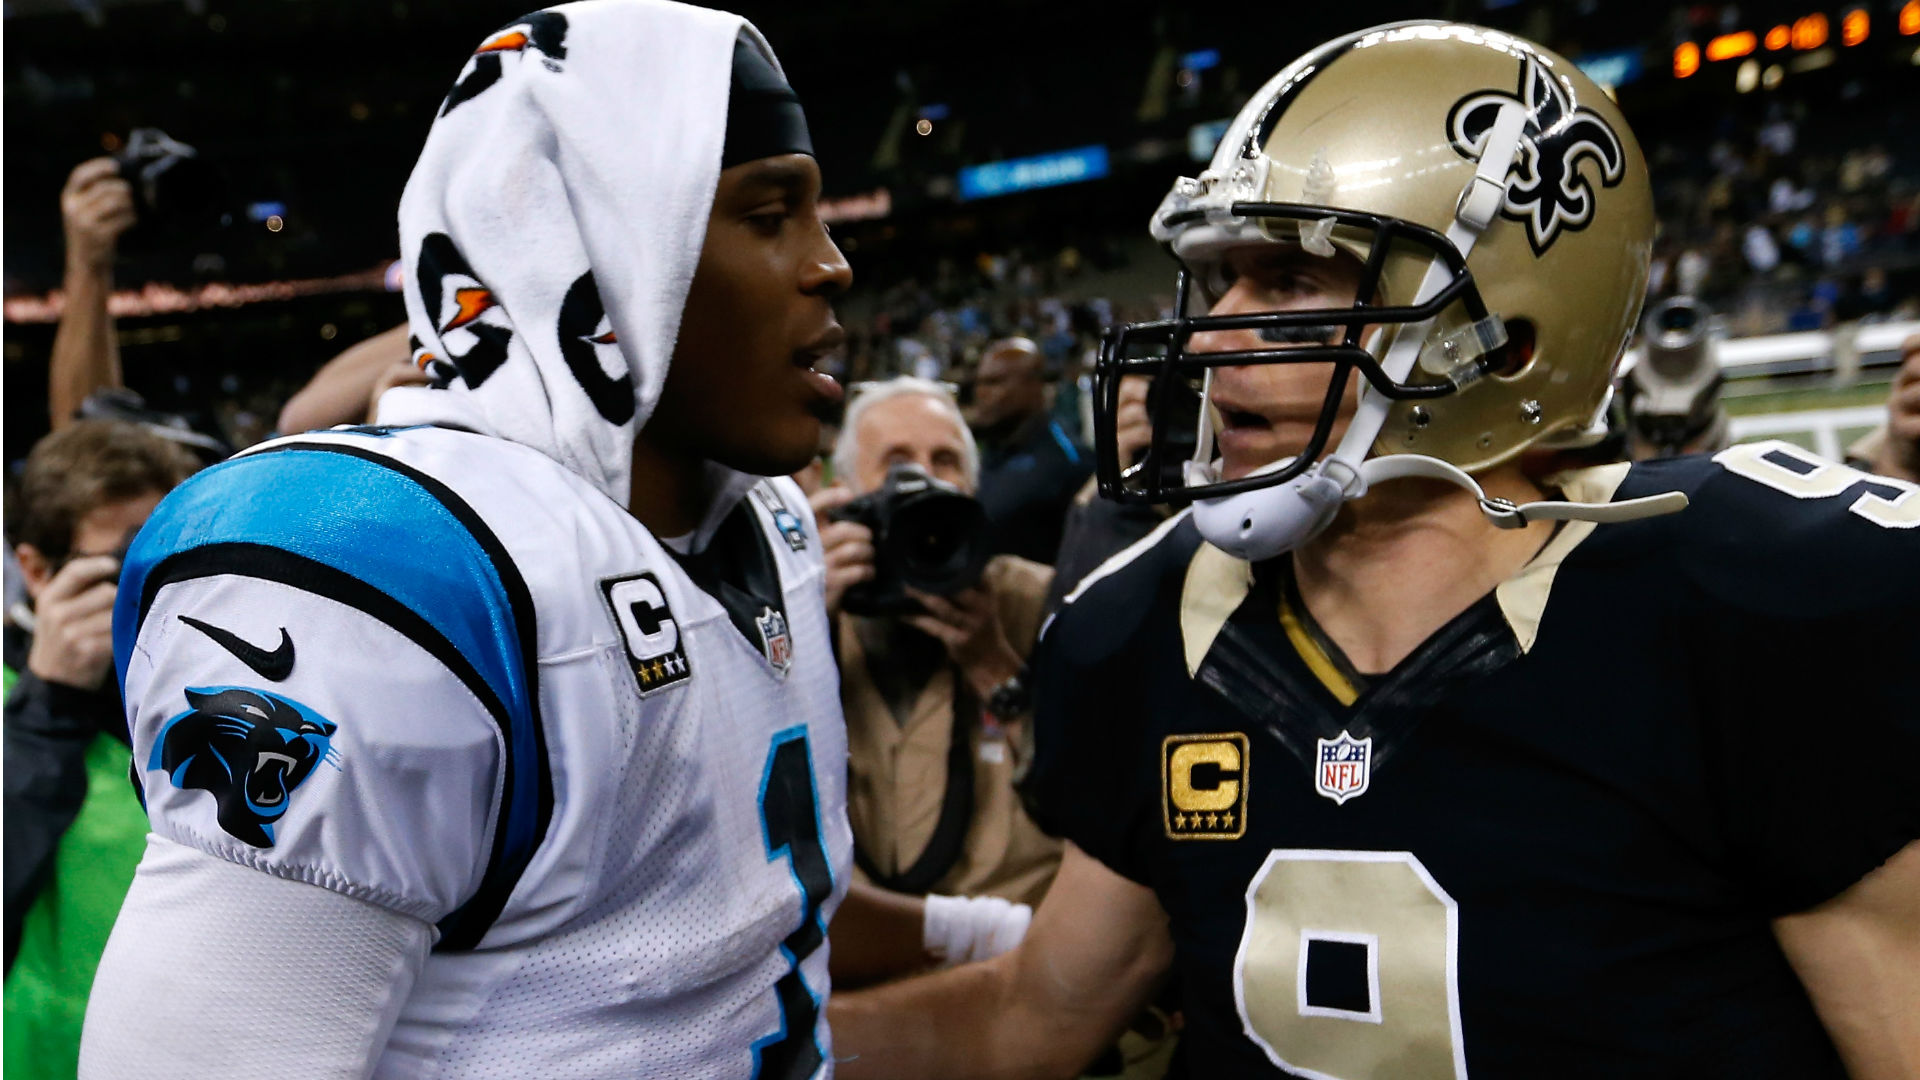 NFC South offseason betting snapshot - Saints division favorites, Super Bowl outsiders